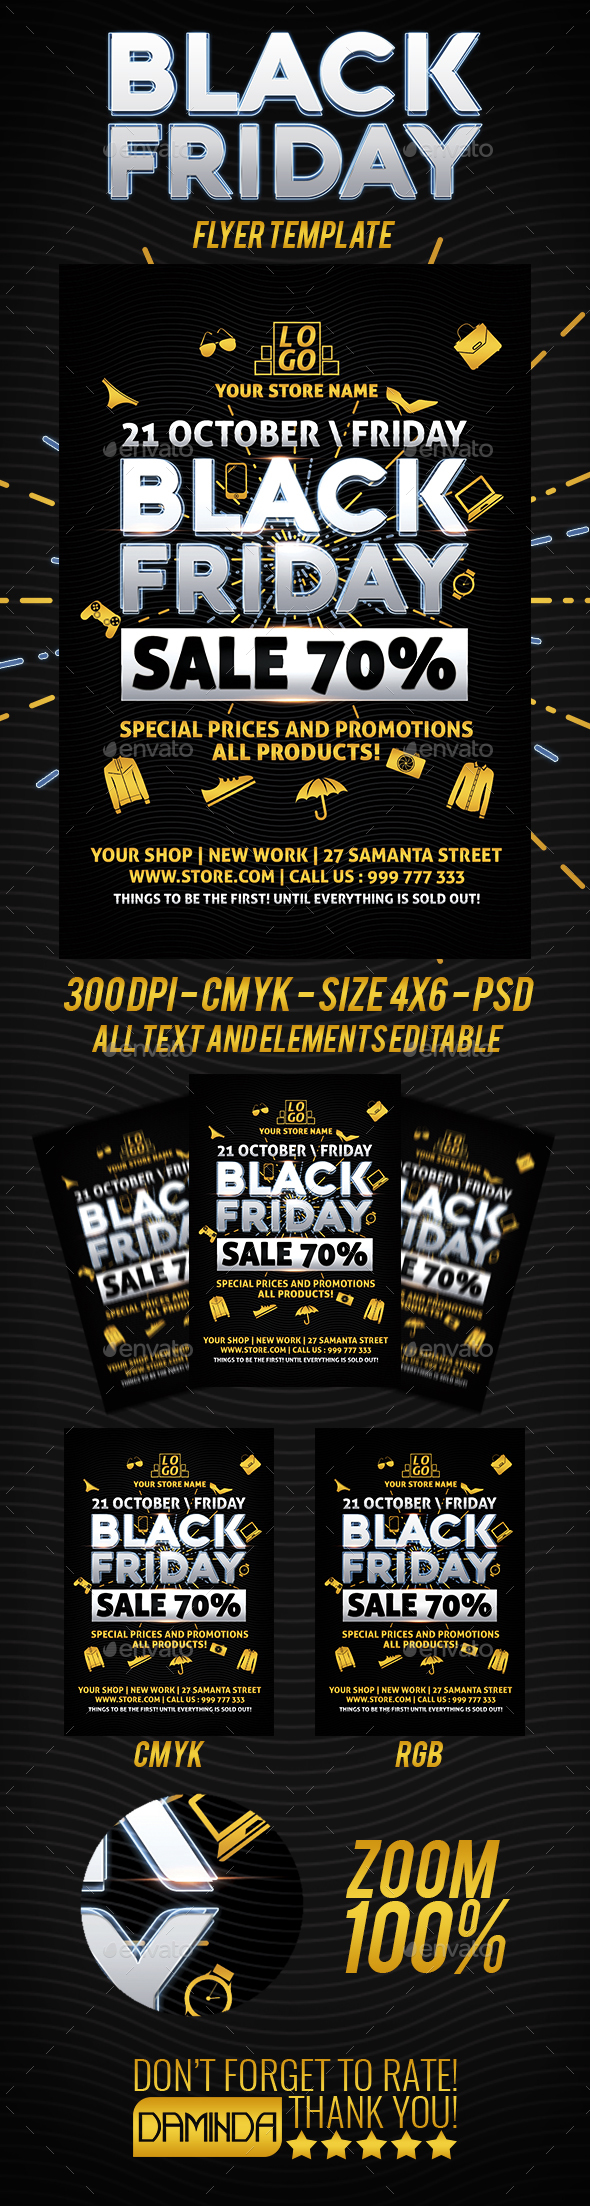 Black Friday Flyer Templete